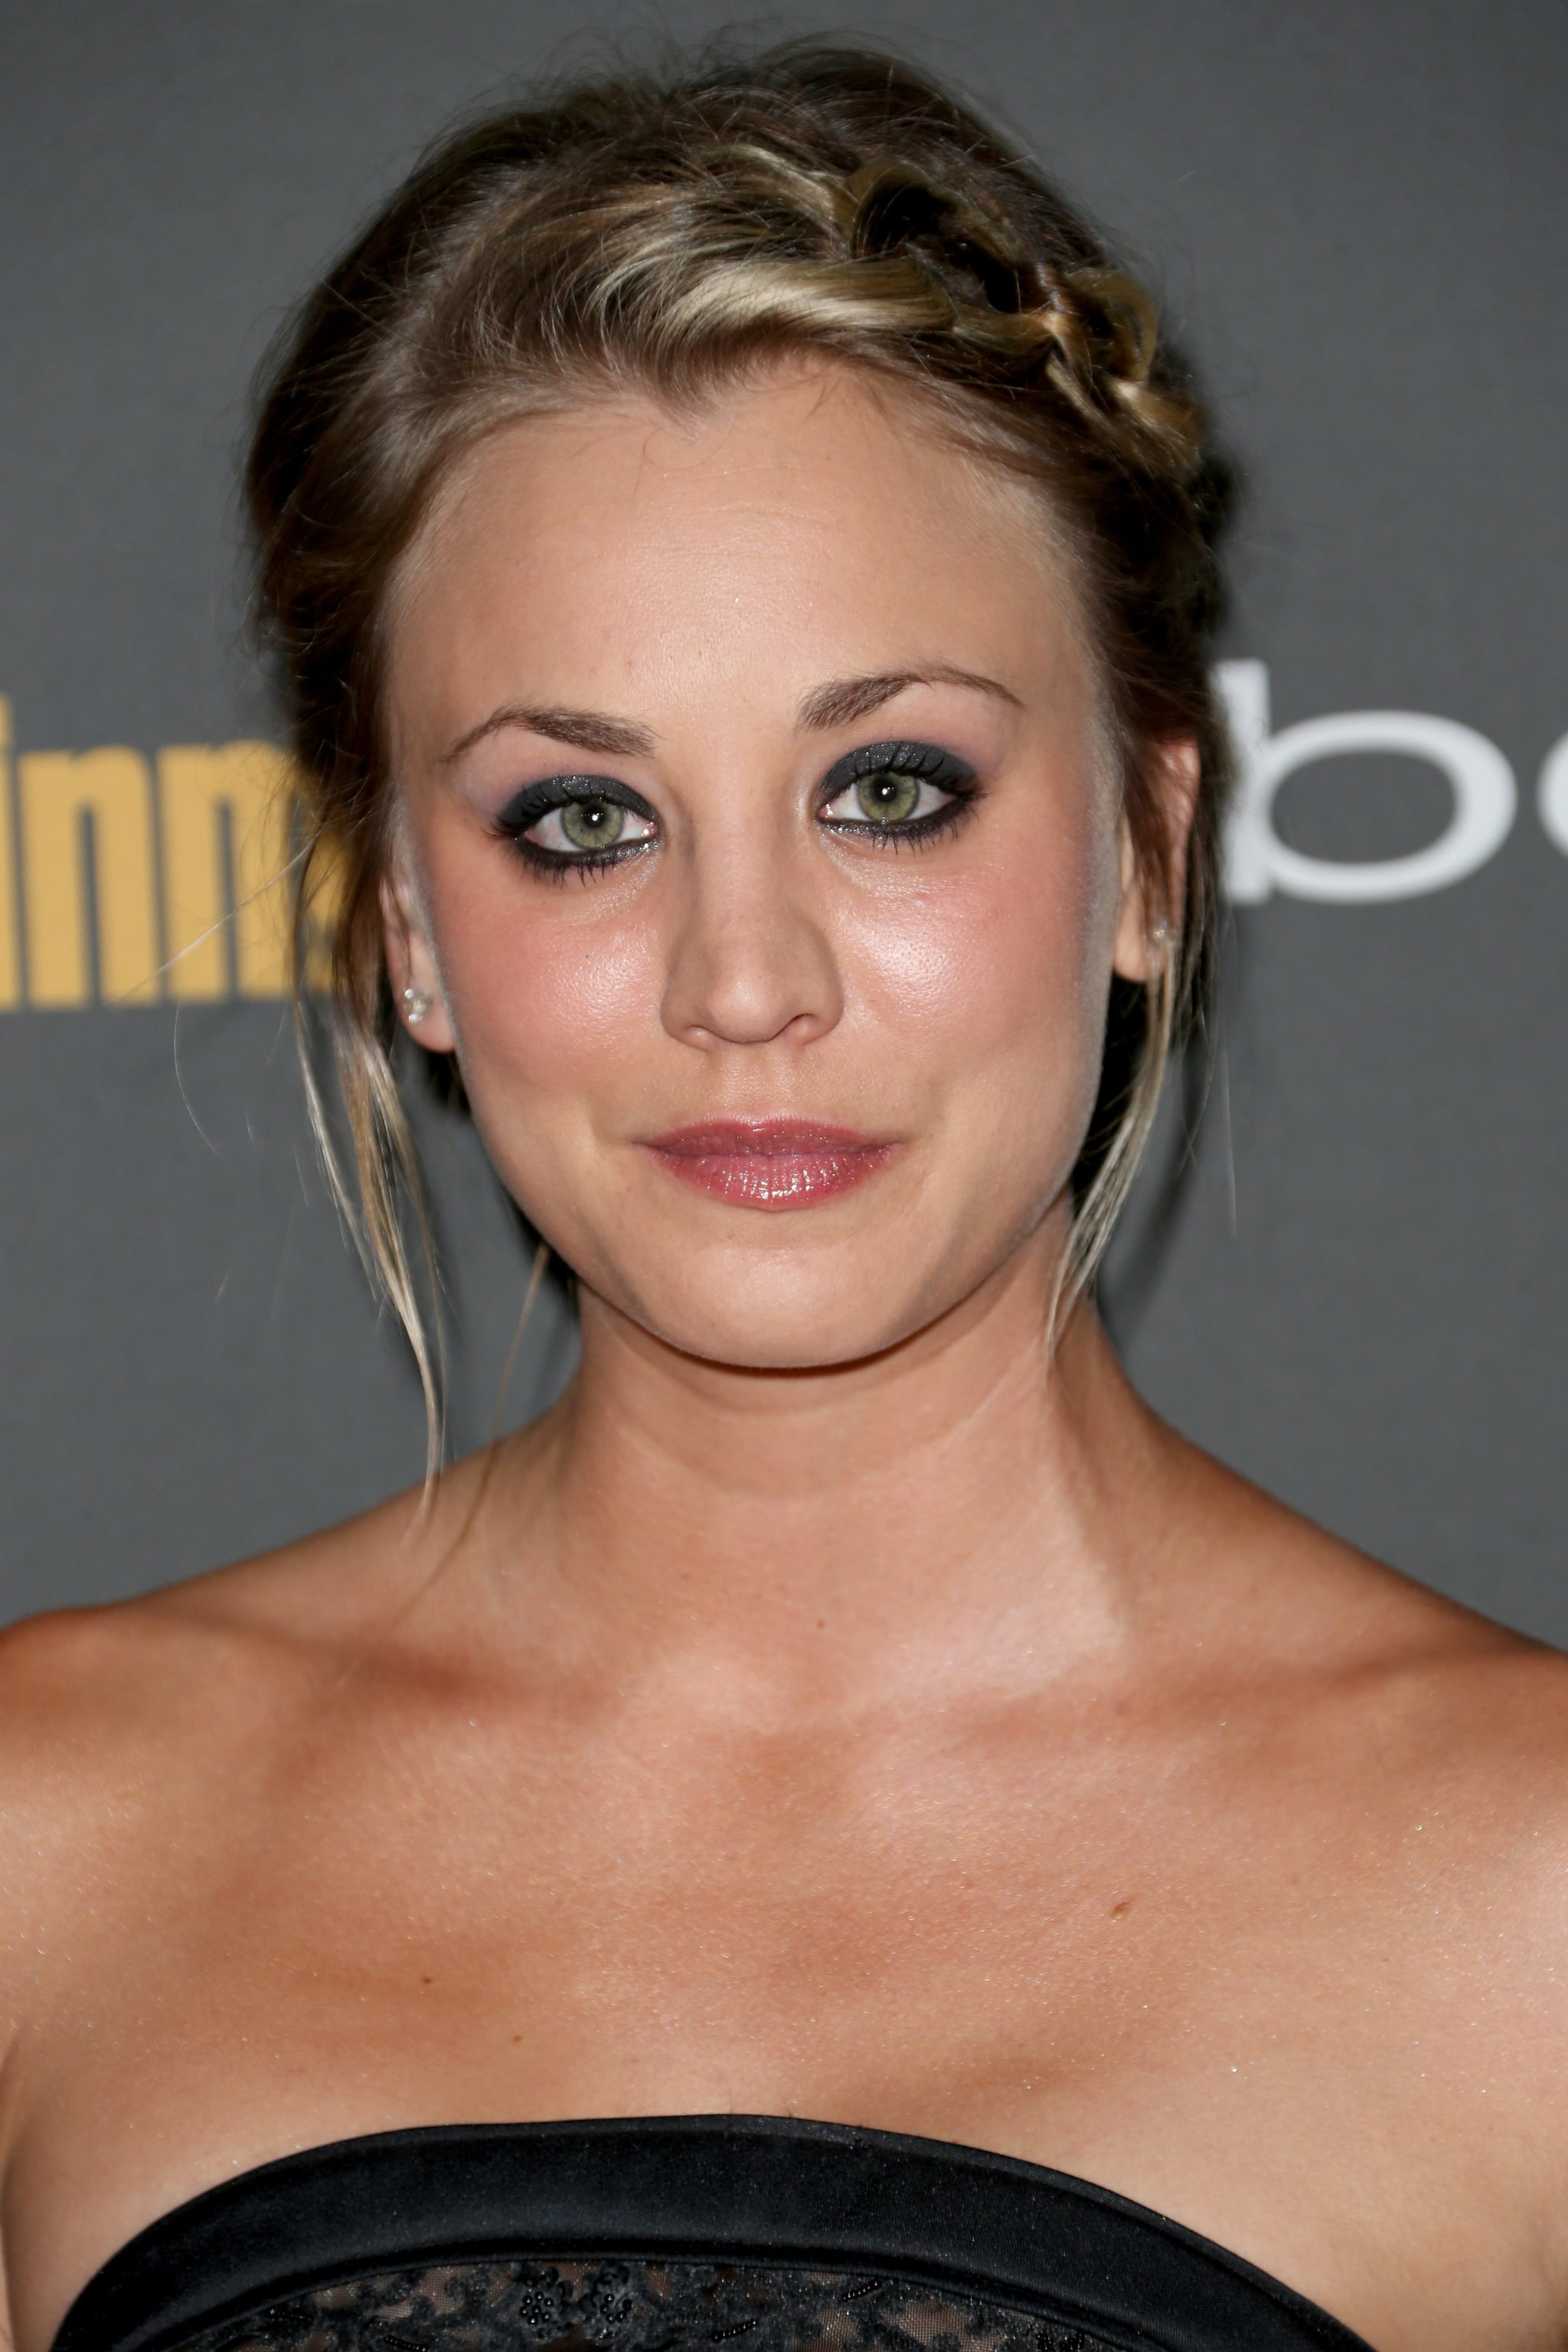 Kaley Cuoco paired a side braid with a smoky eye for a sweet, yet sexy look at Entertainment Weekly's pre-Emmys party.